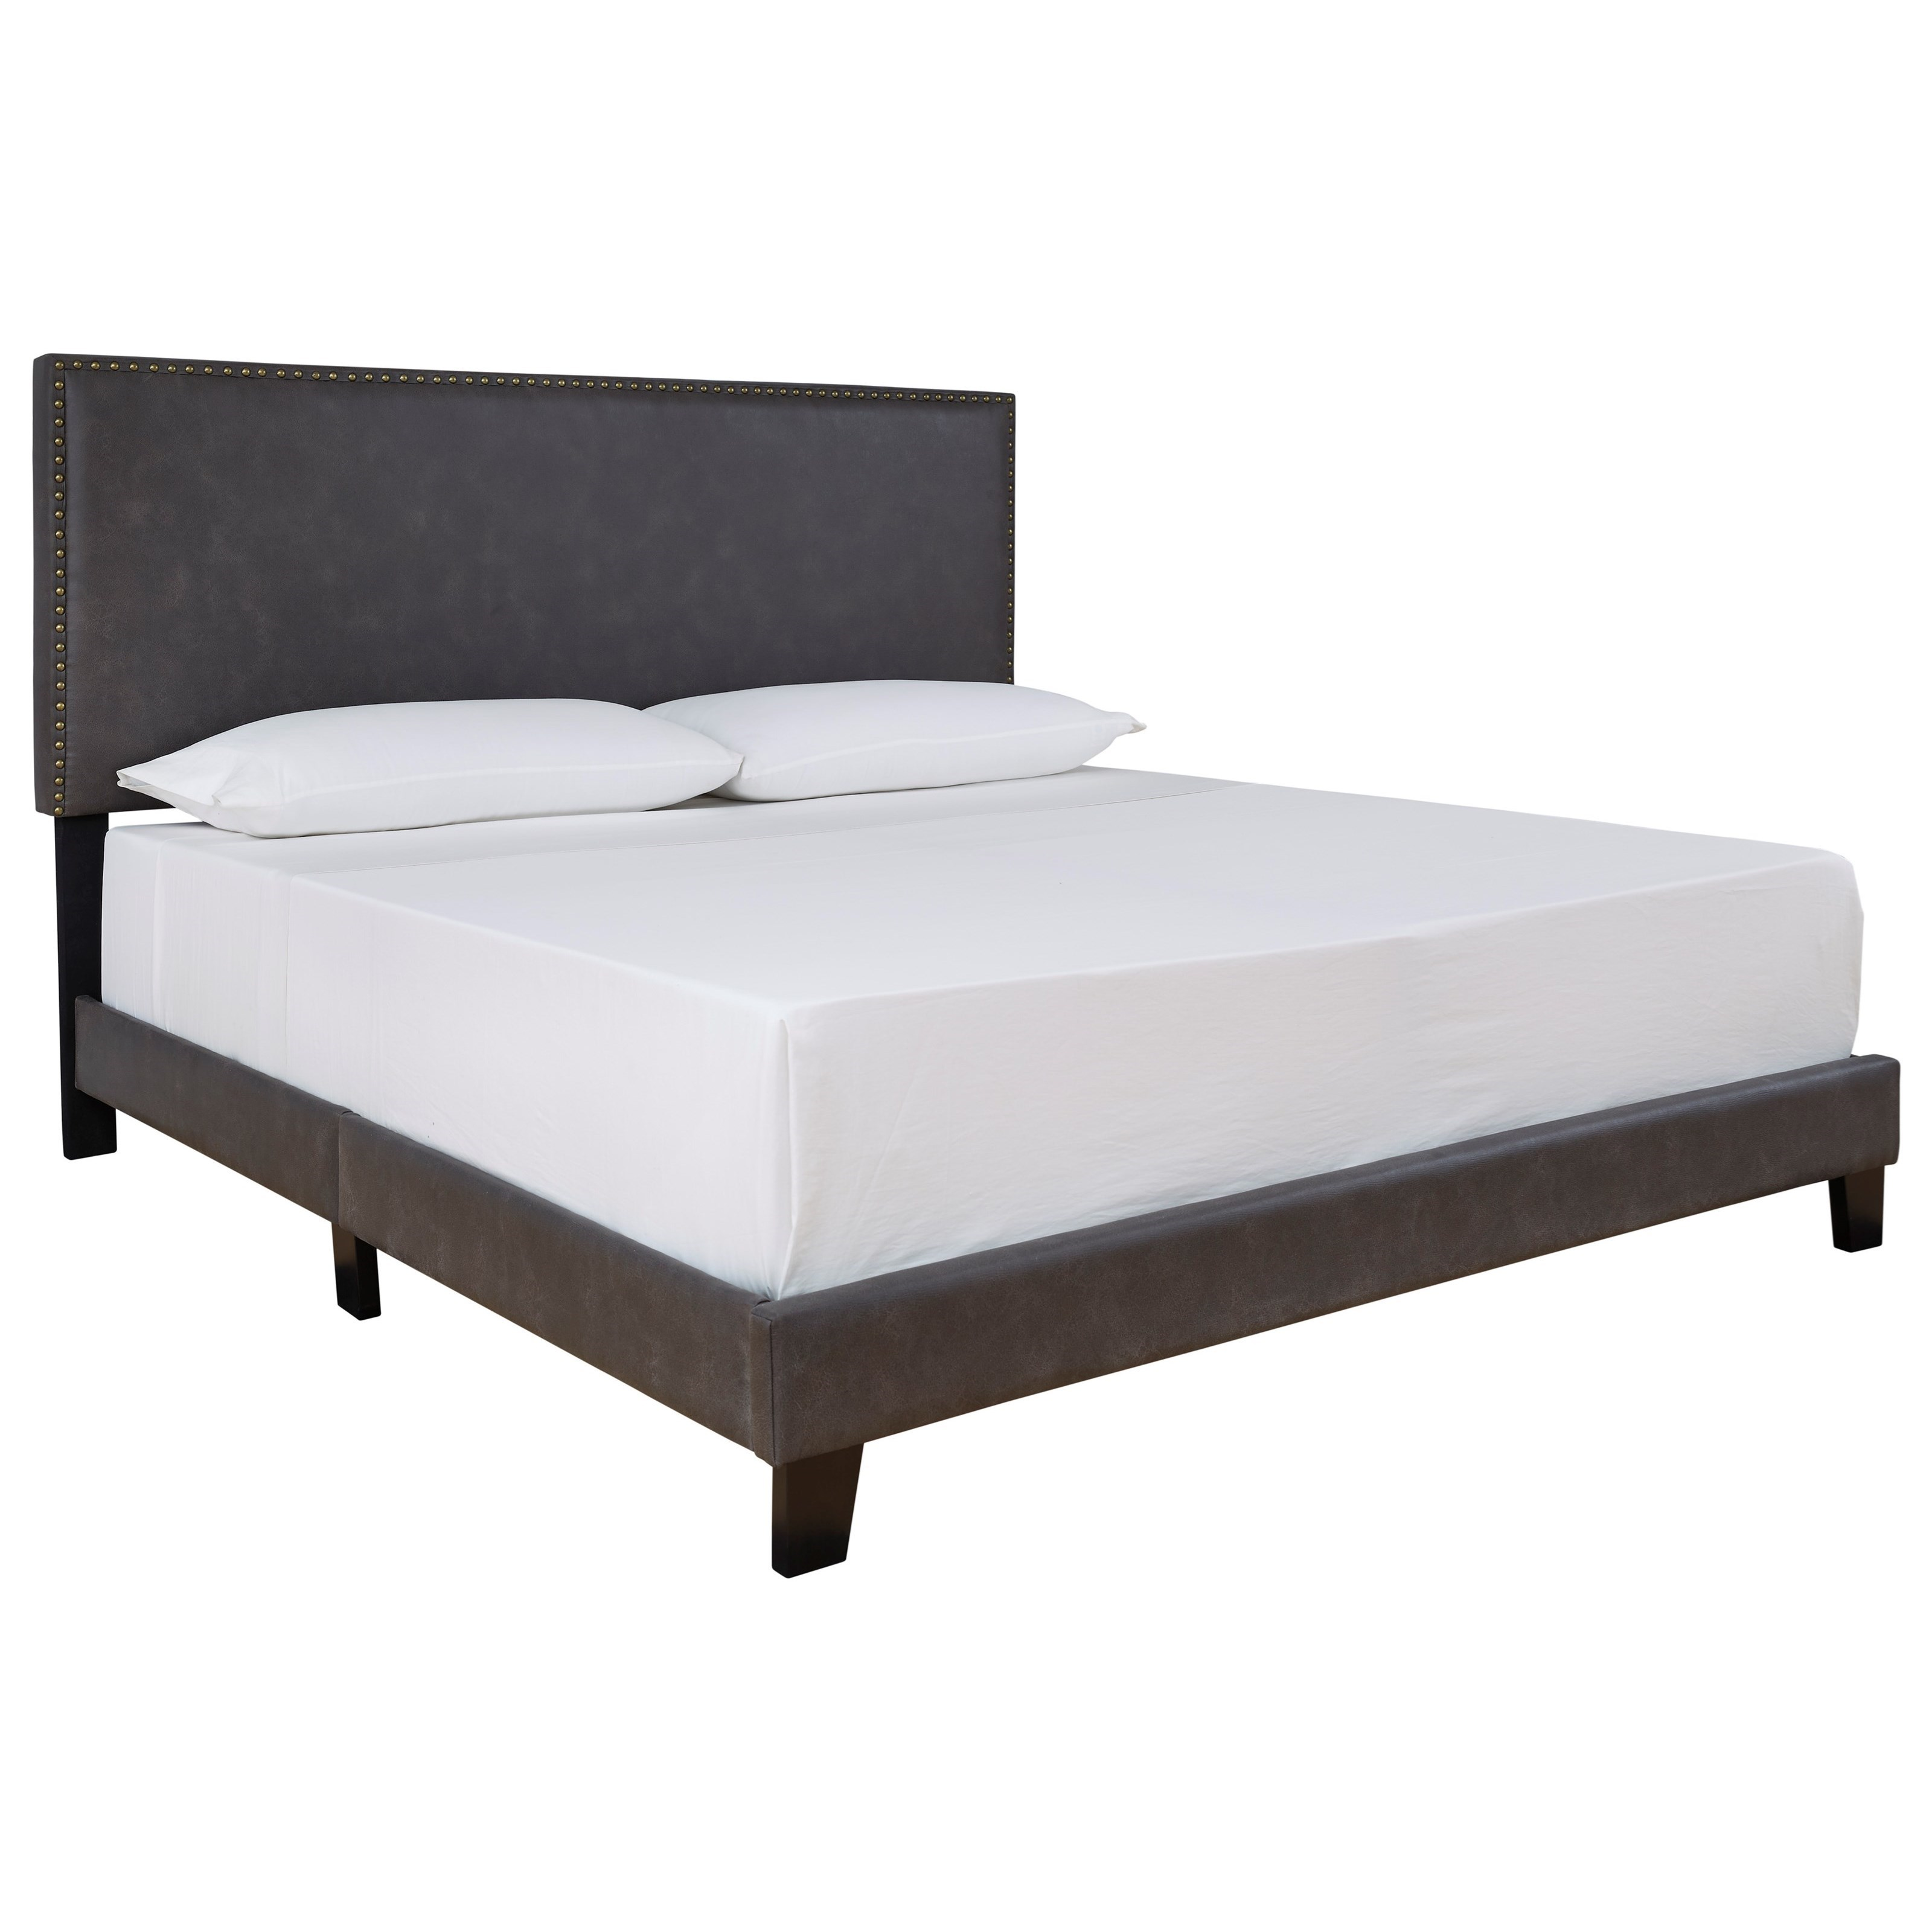 Signature Design By Ashley Vintasso Queen Upholstered Bed In Grayish Brown Faux Leather Royal Furniture Upholstered Beds